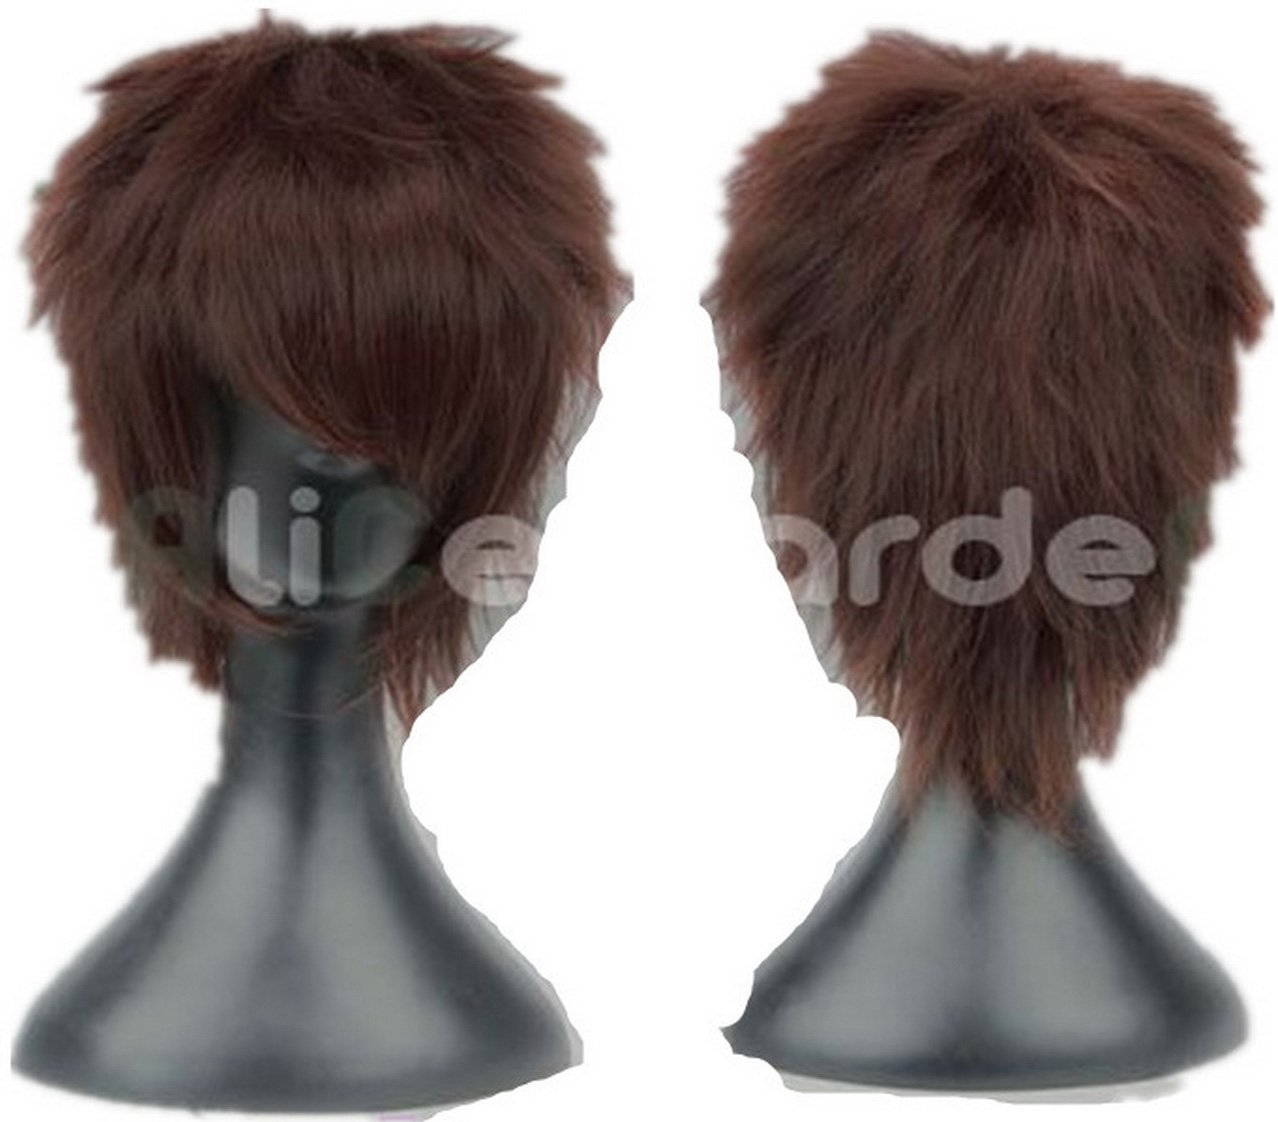 Coolsky Wigs Cosplay Short Gray Wig Costume Wig Lace Front